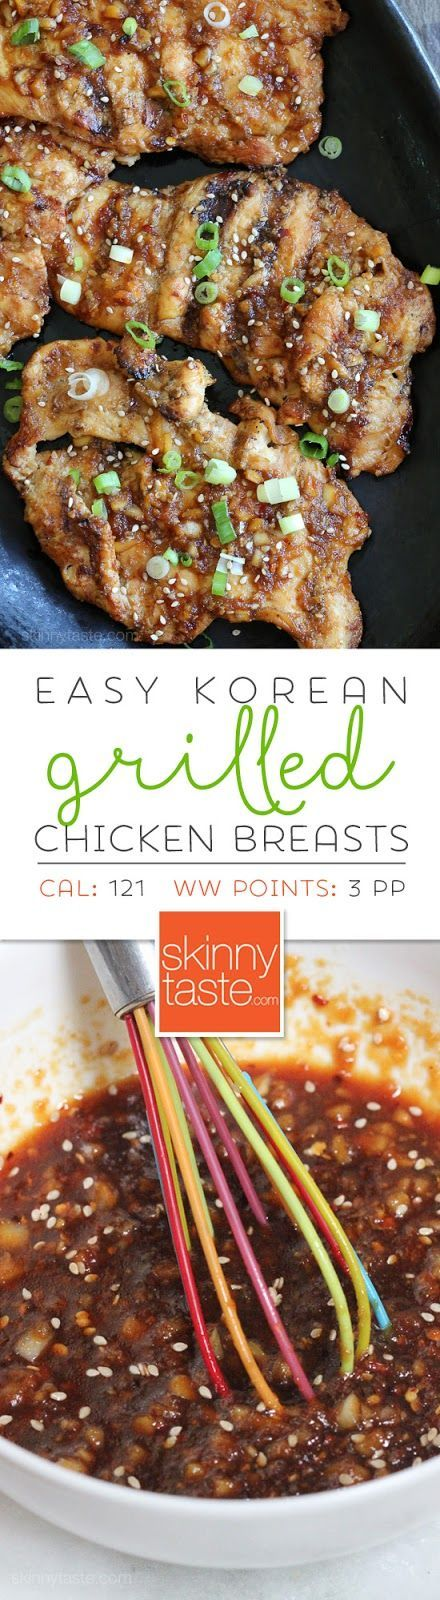 Korean Grilled Chicken Breasts –juiciest, most flavorful chicken breasts you'll ever make!